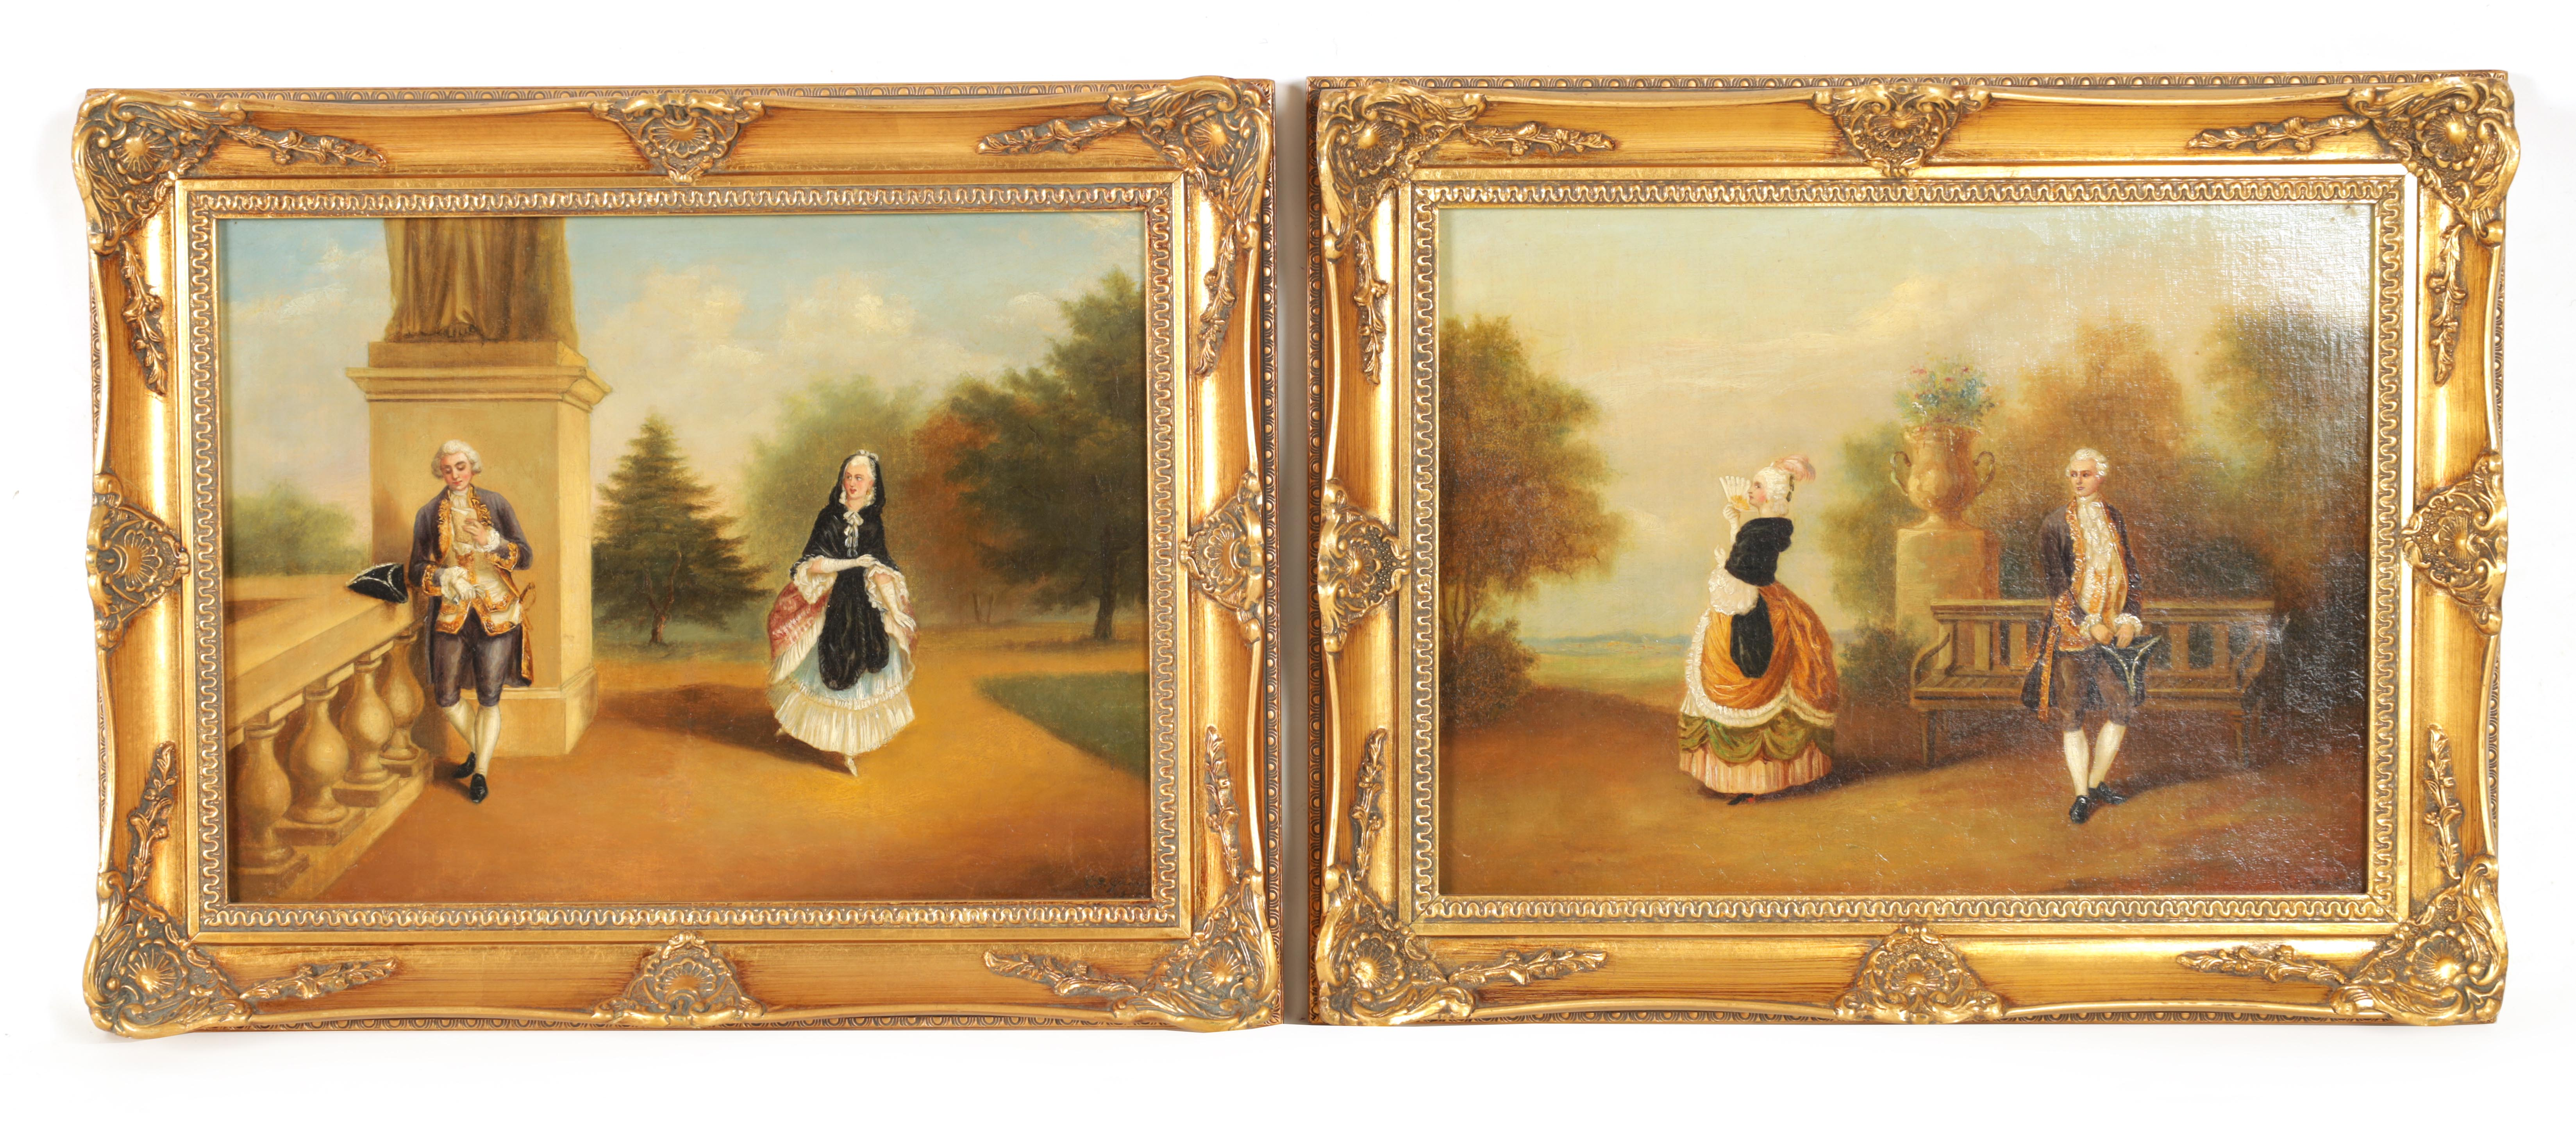 ERNEST GUSTAVE GIRARDOT (1840-1904) A PAIR OF OILS ON CANVAS romantic classical garden scenes with